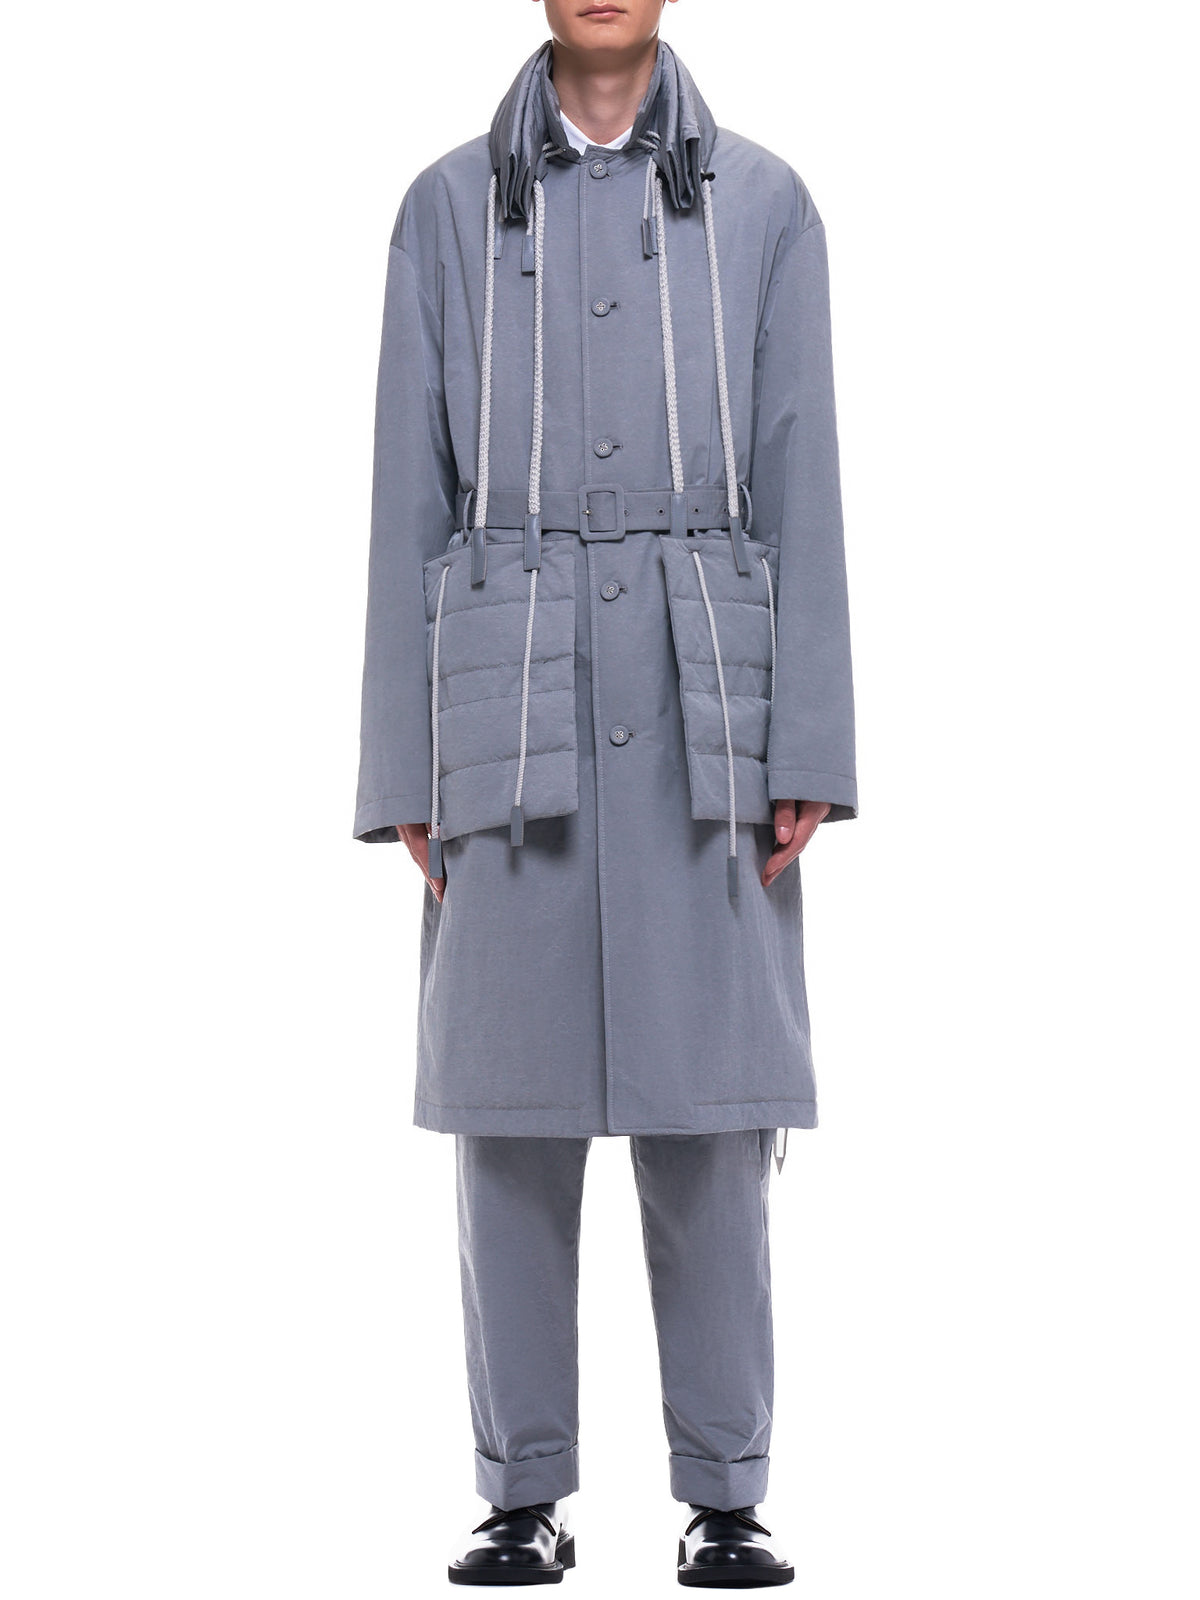 Fold Coat (MWOLCO07-GRAY)